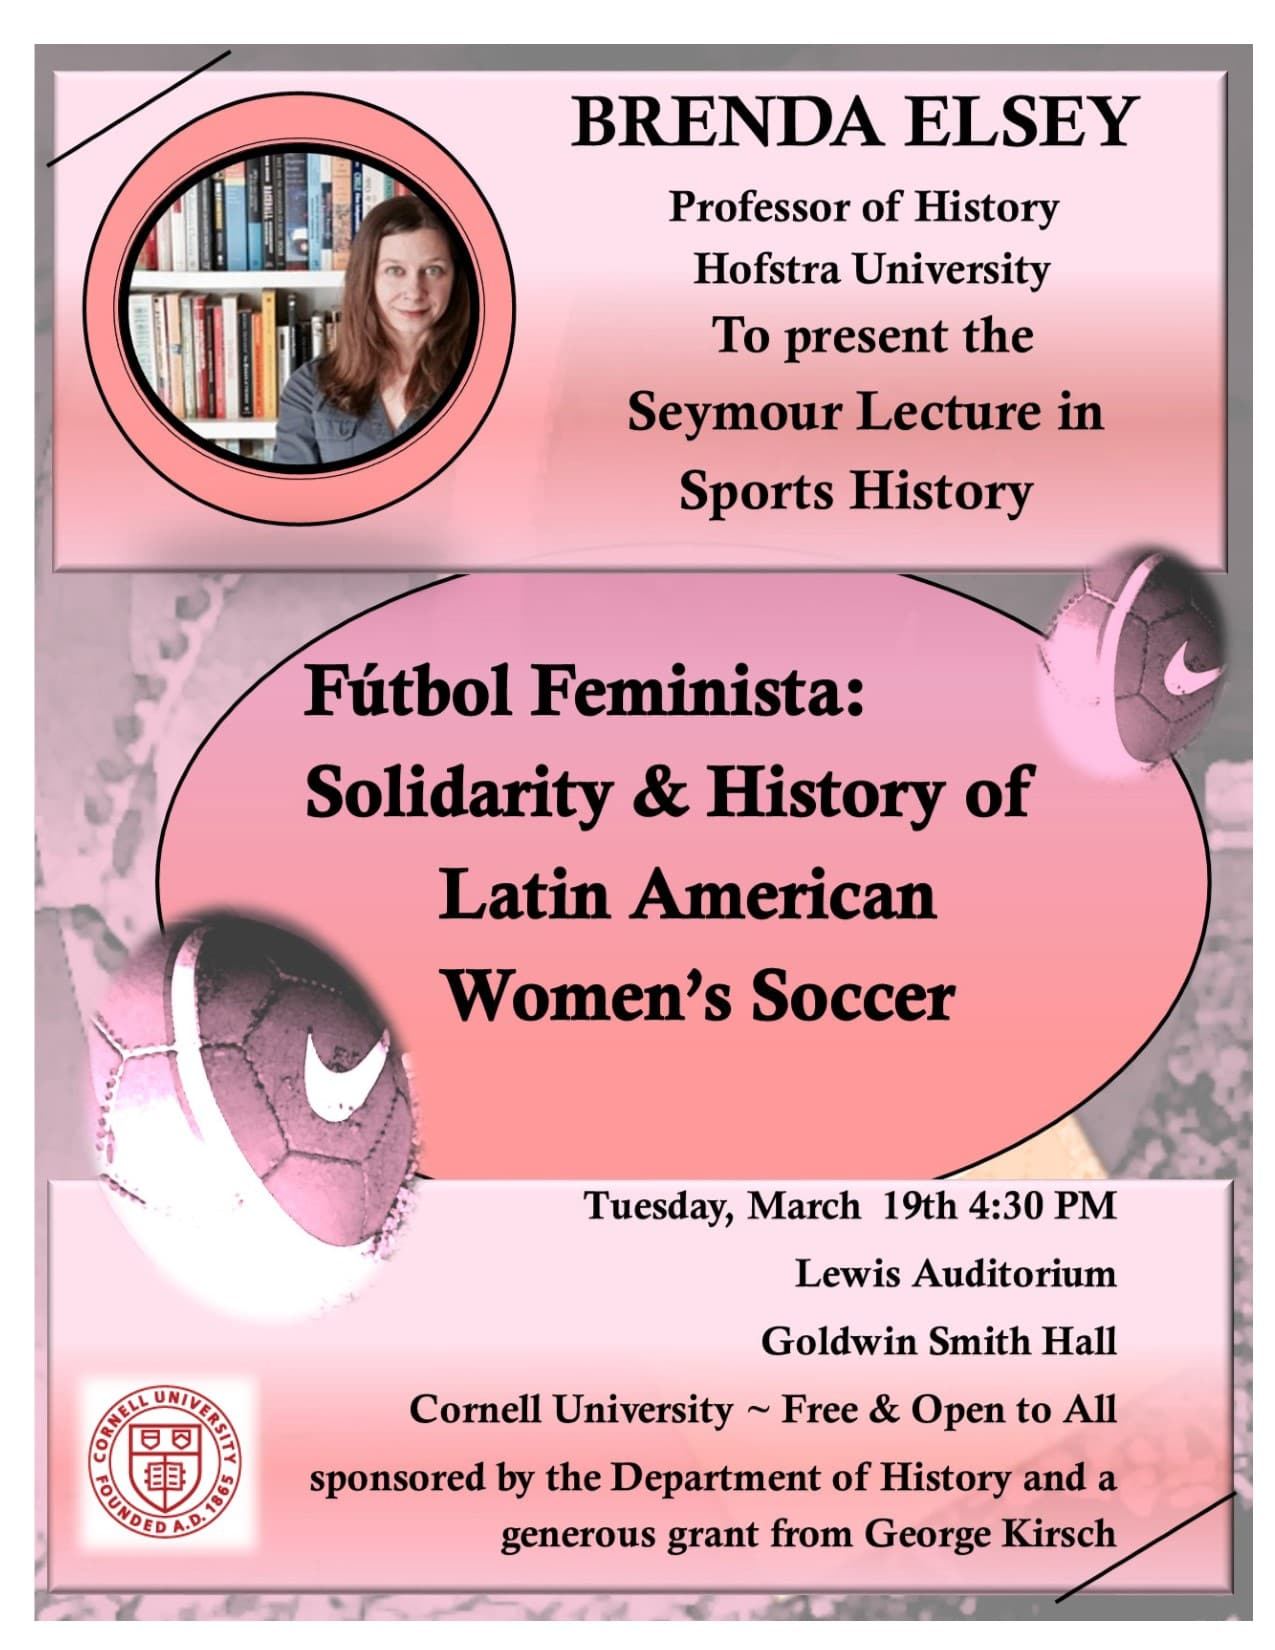 Advertisement for the Seymour Lecture in Sports History